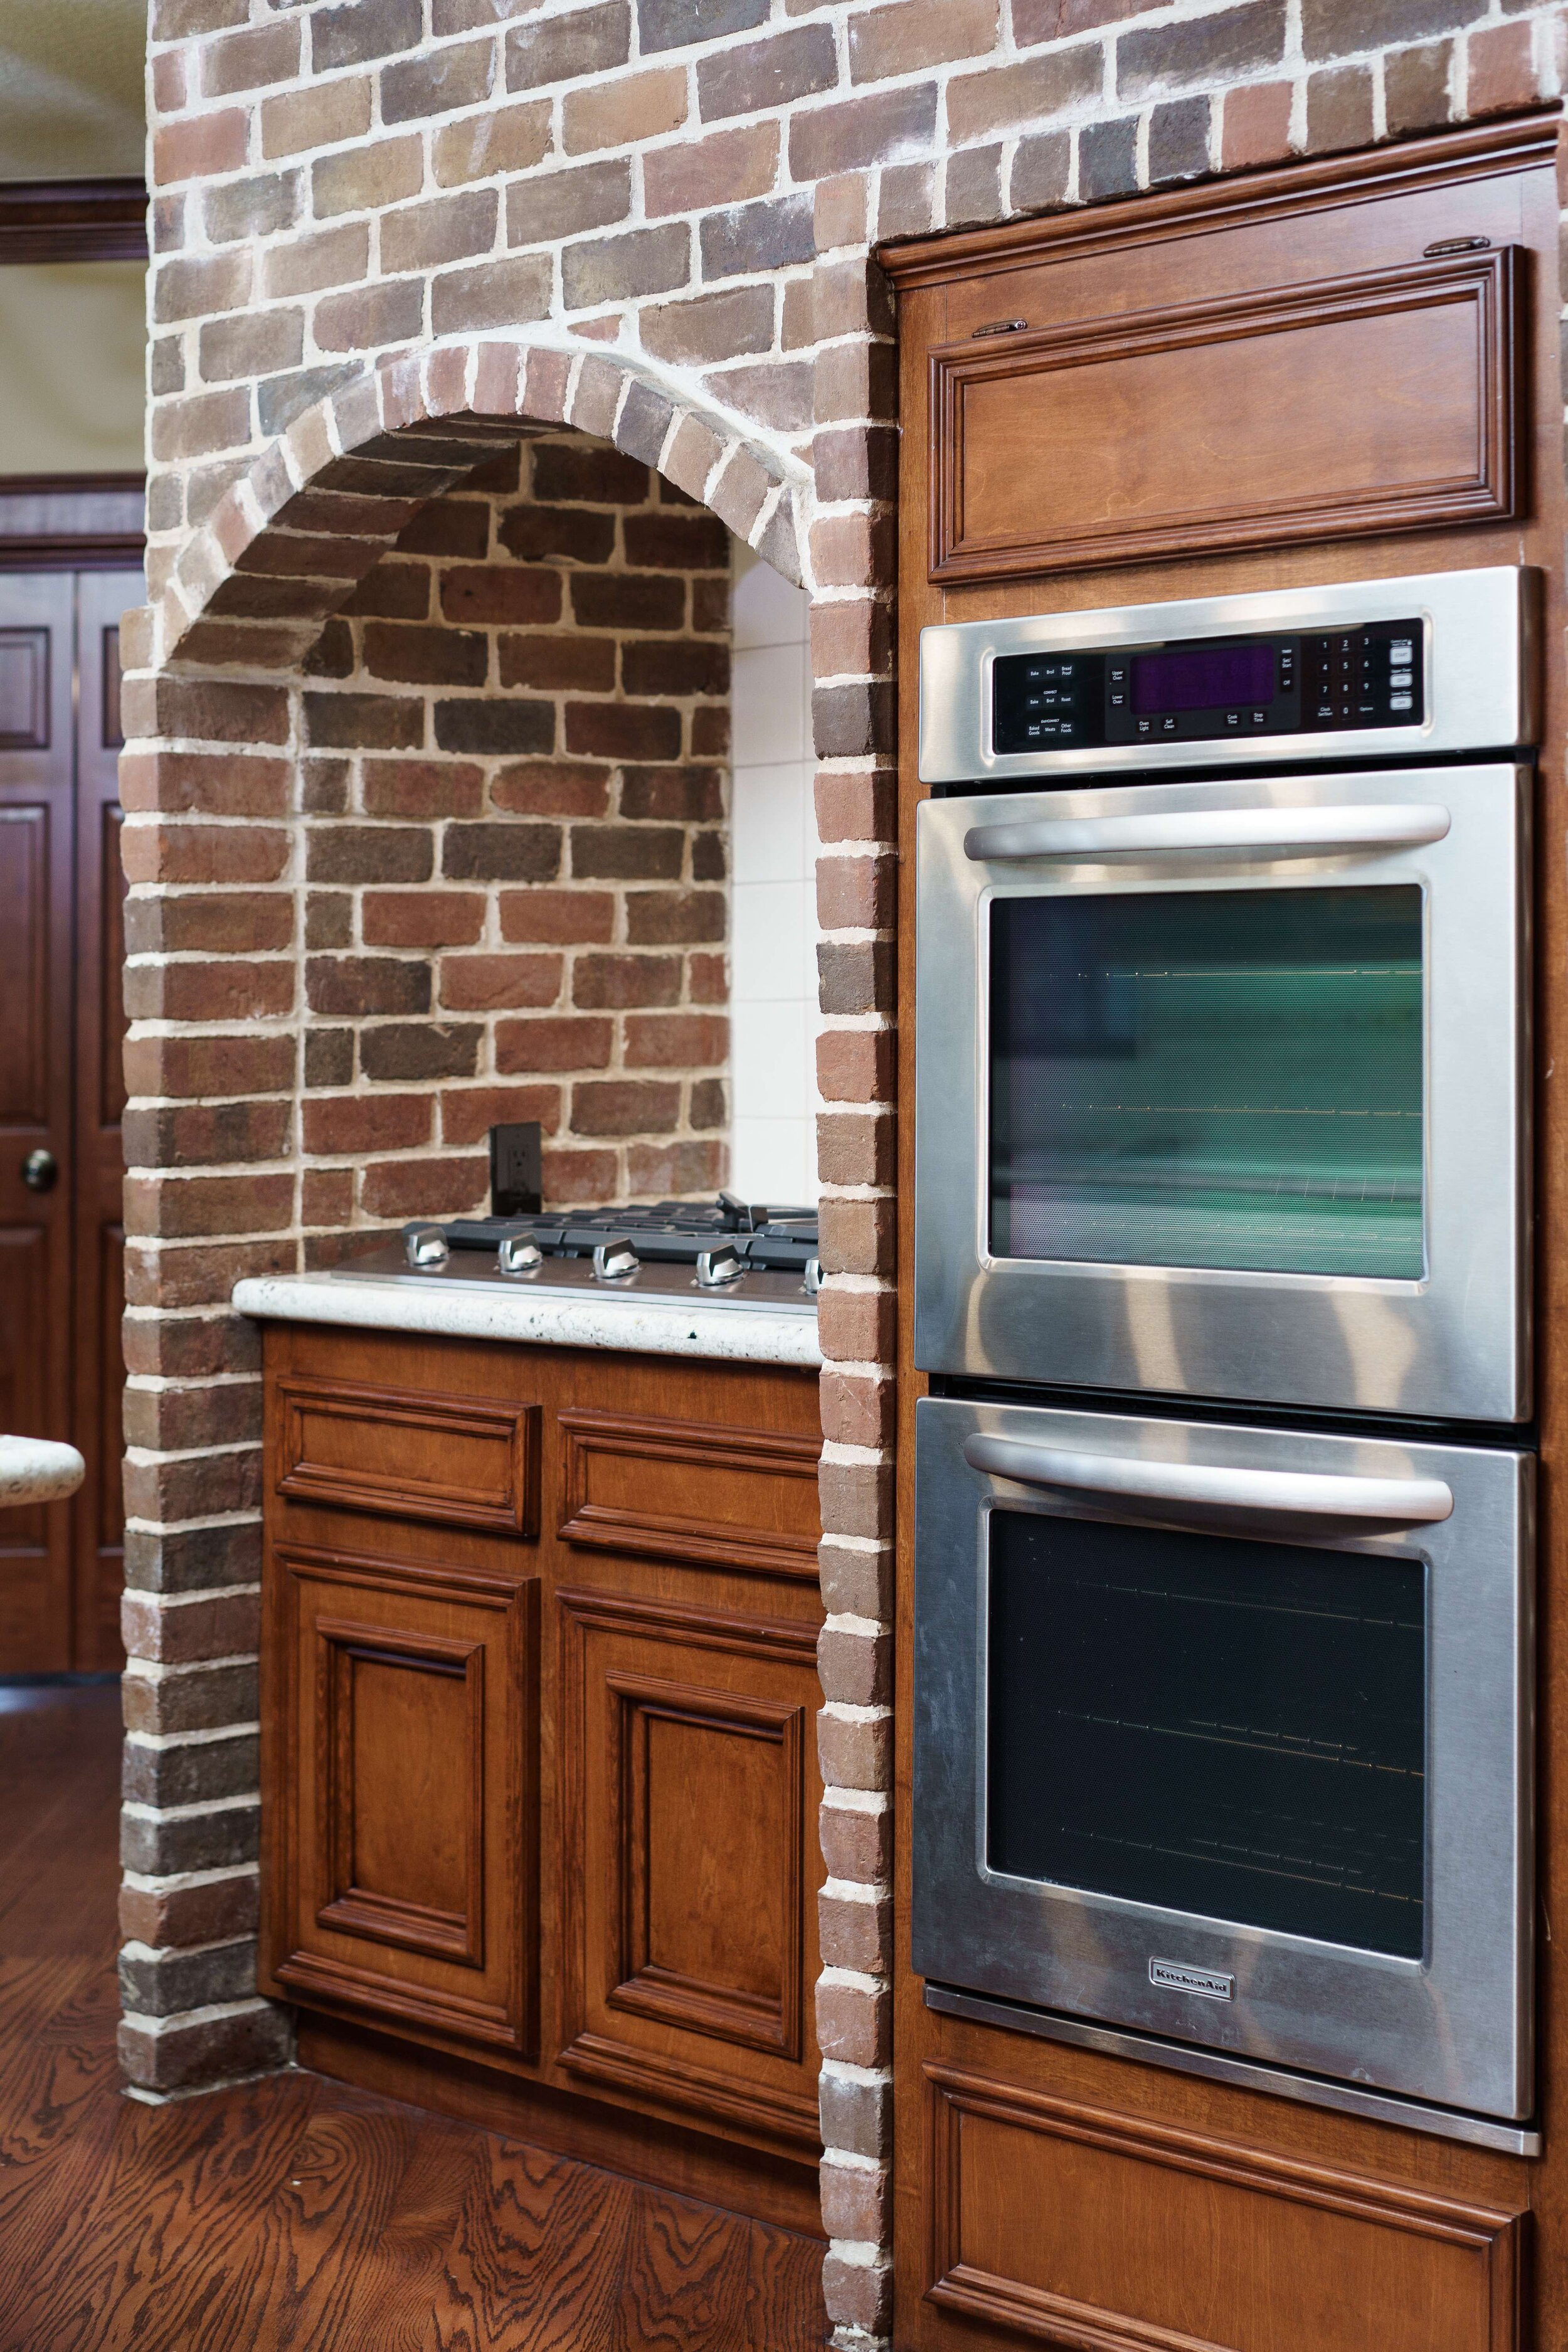 Brick accent wall in kitchen renovation. Stainless steel appliances, stainless steel gas cooktop, wood stained cabinets, oak wood floor.